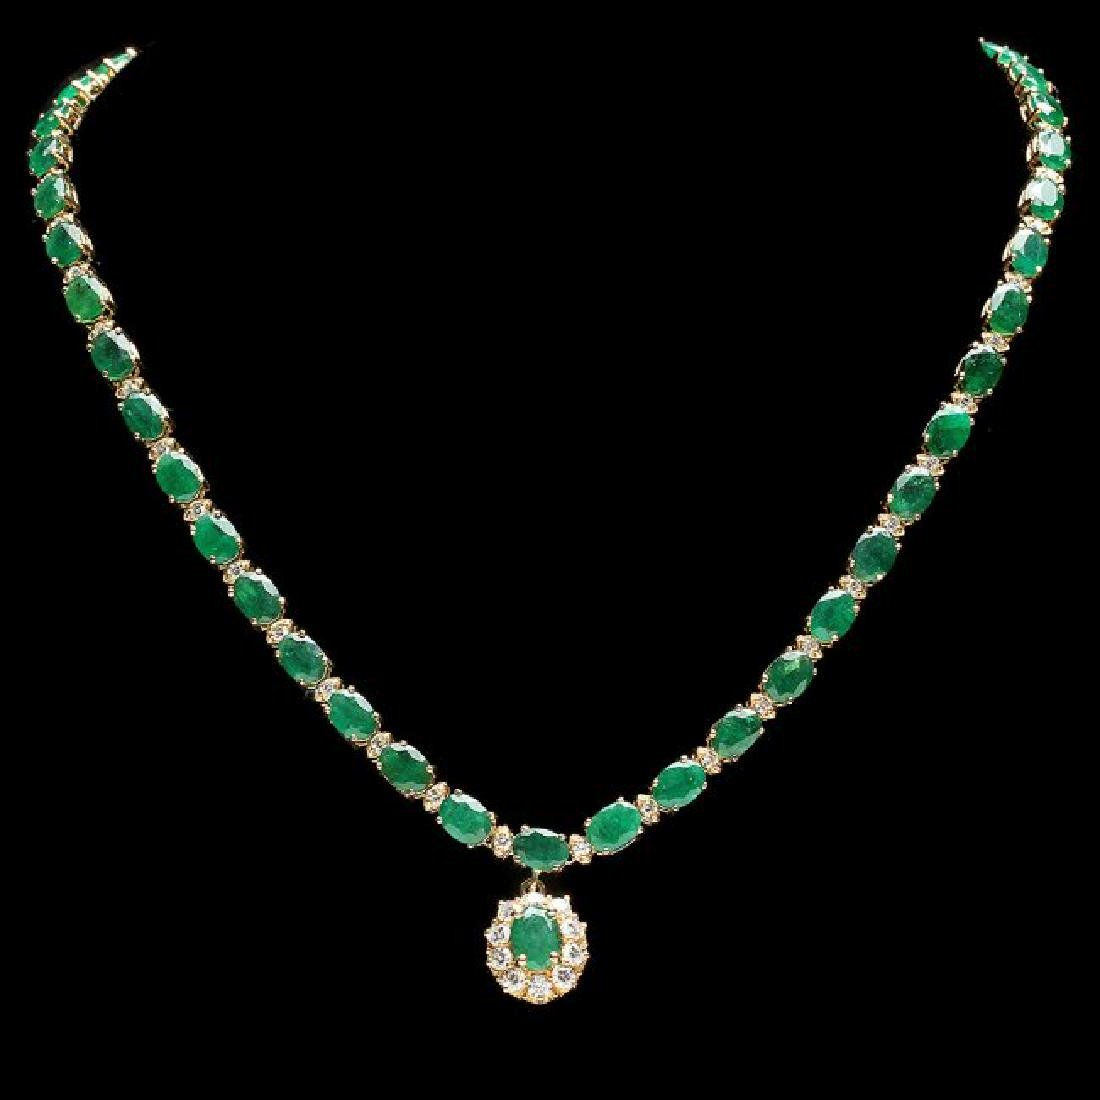 14k Gold 24.25ct Emerald 2.00ct Diamond Necklace - 2